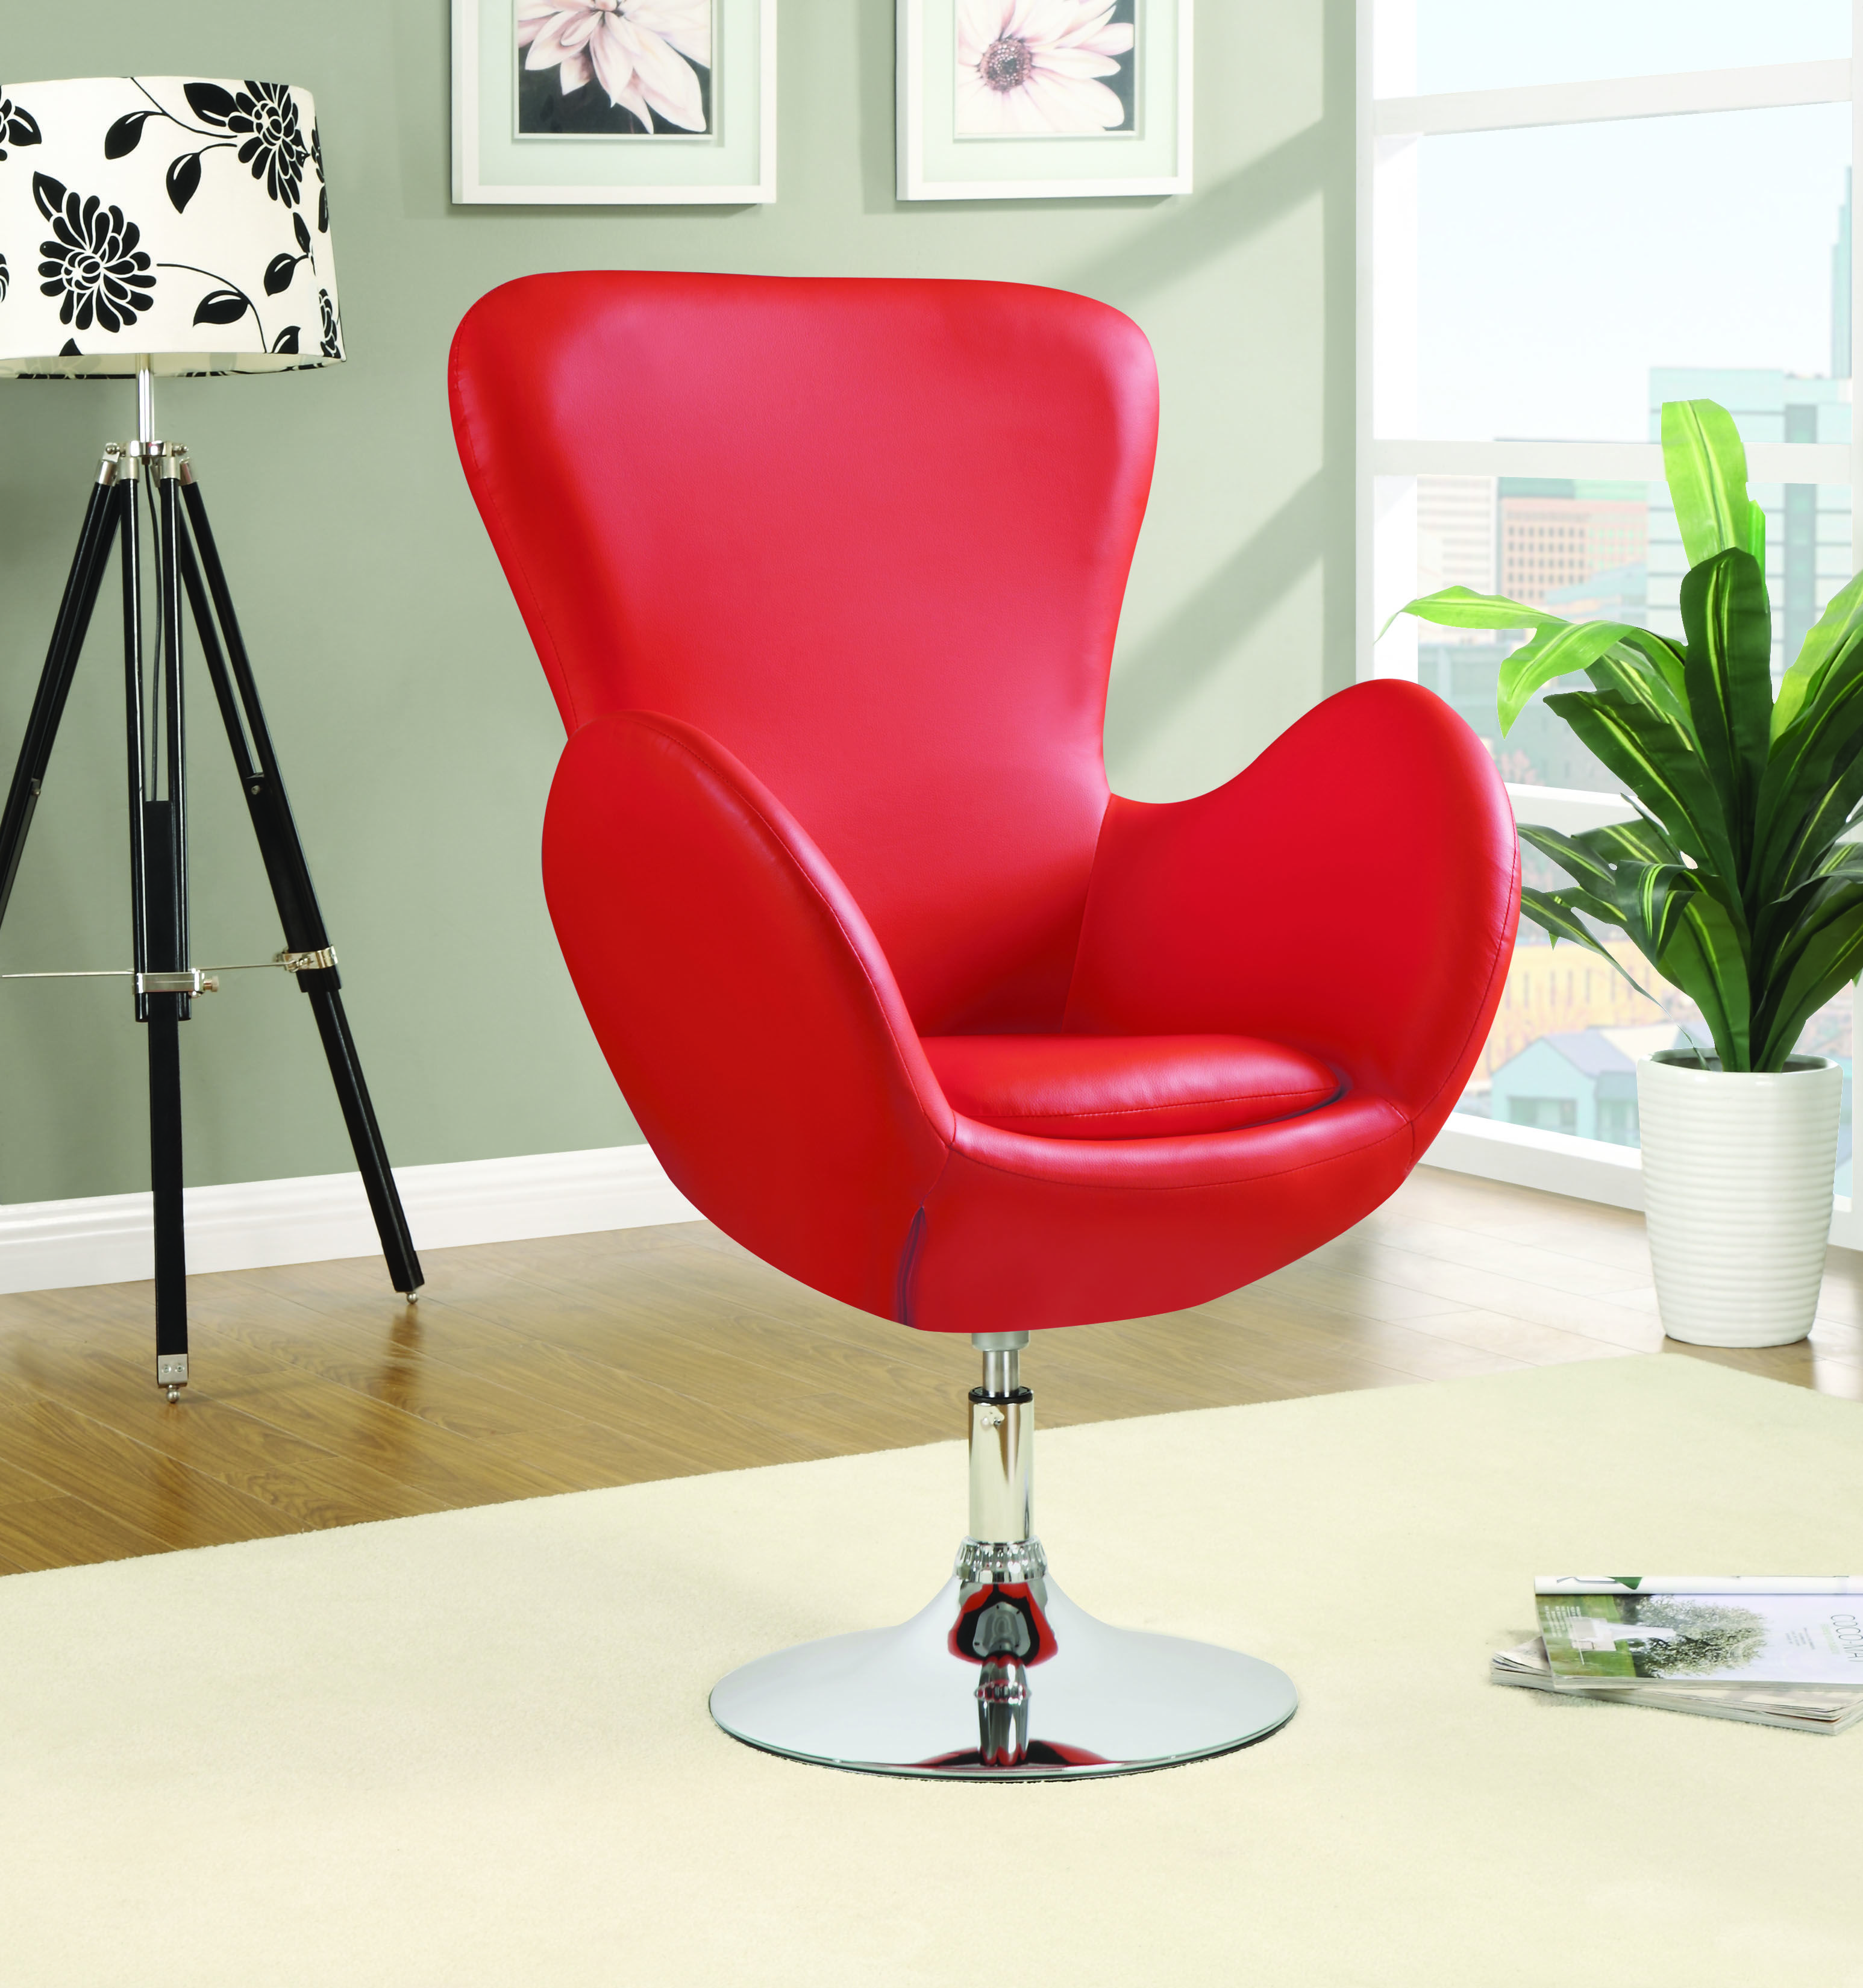 Contemporary swivel chair with high back construction. A perfect accent addition for your bedroom or living room! (Item# 902101) #Accents #Chair #Stylish #Leather #CoasterCompany #Coaster